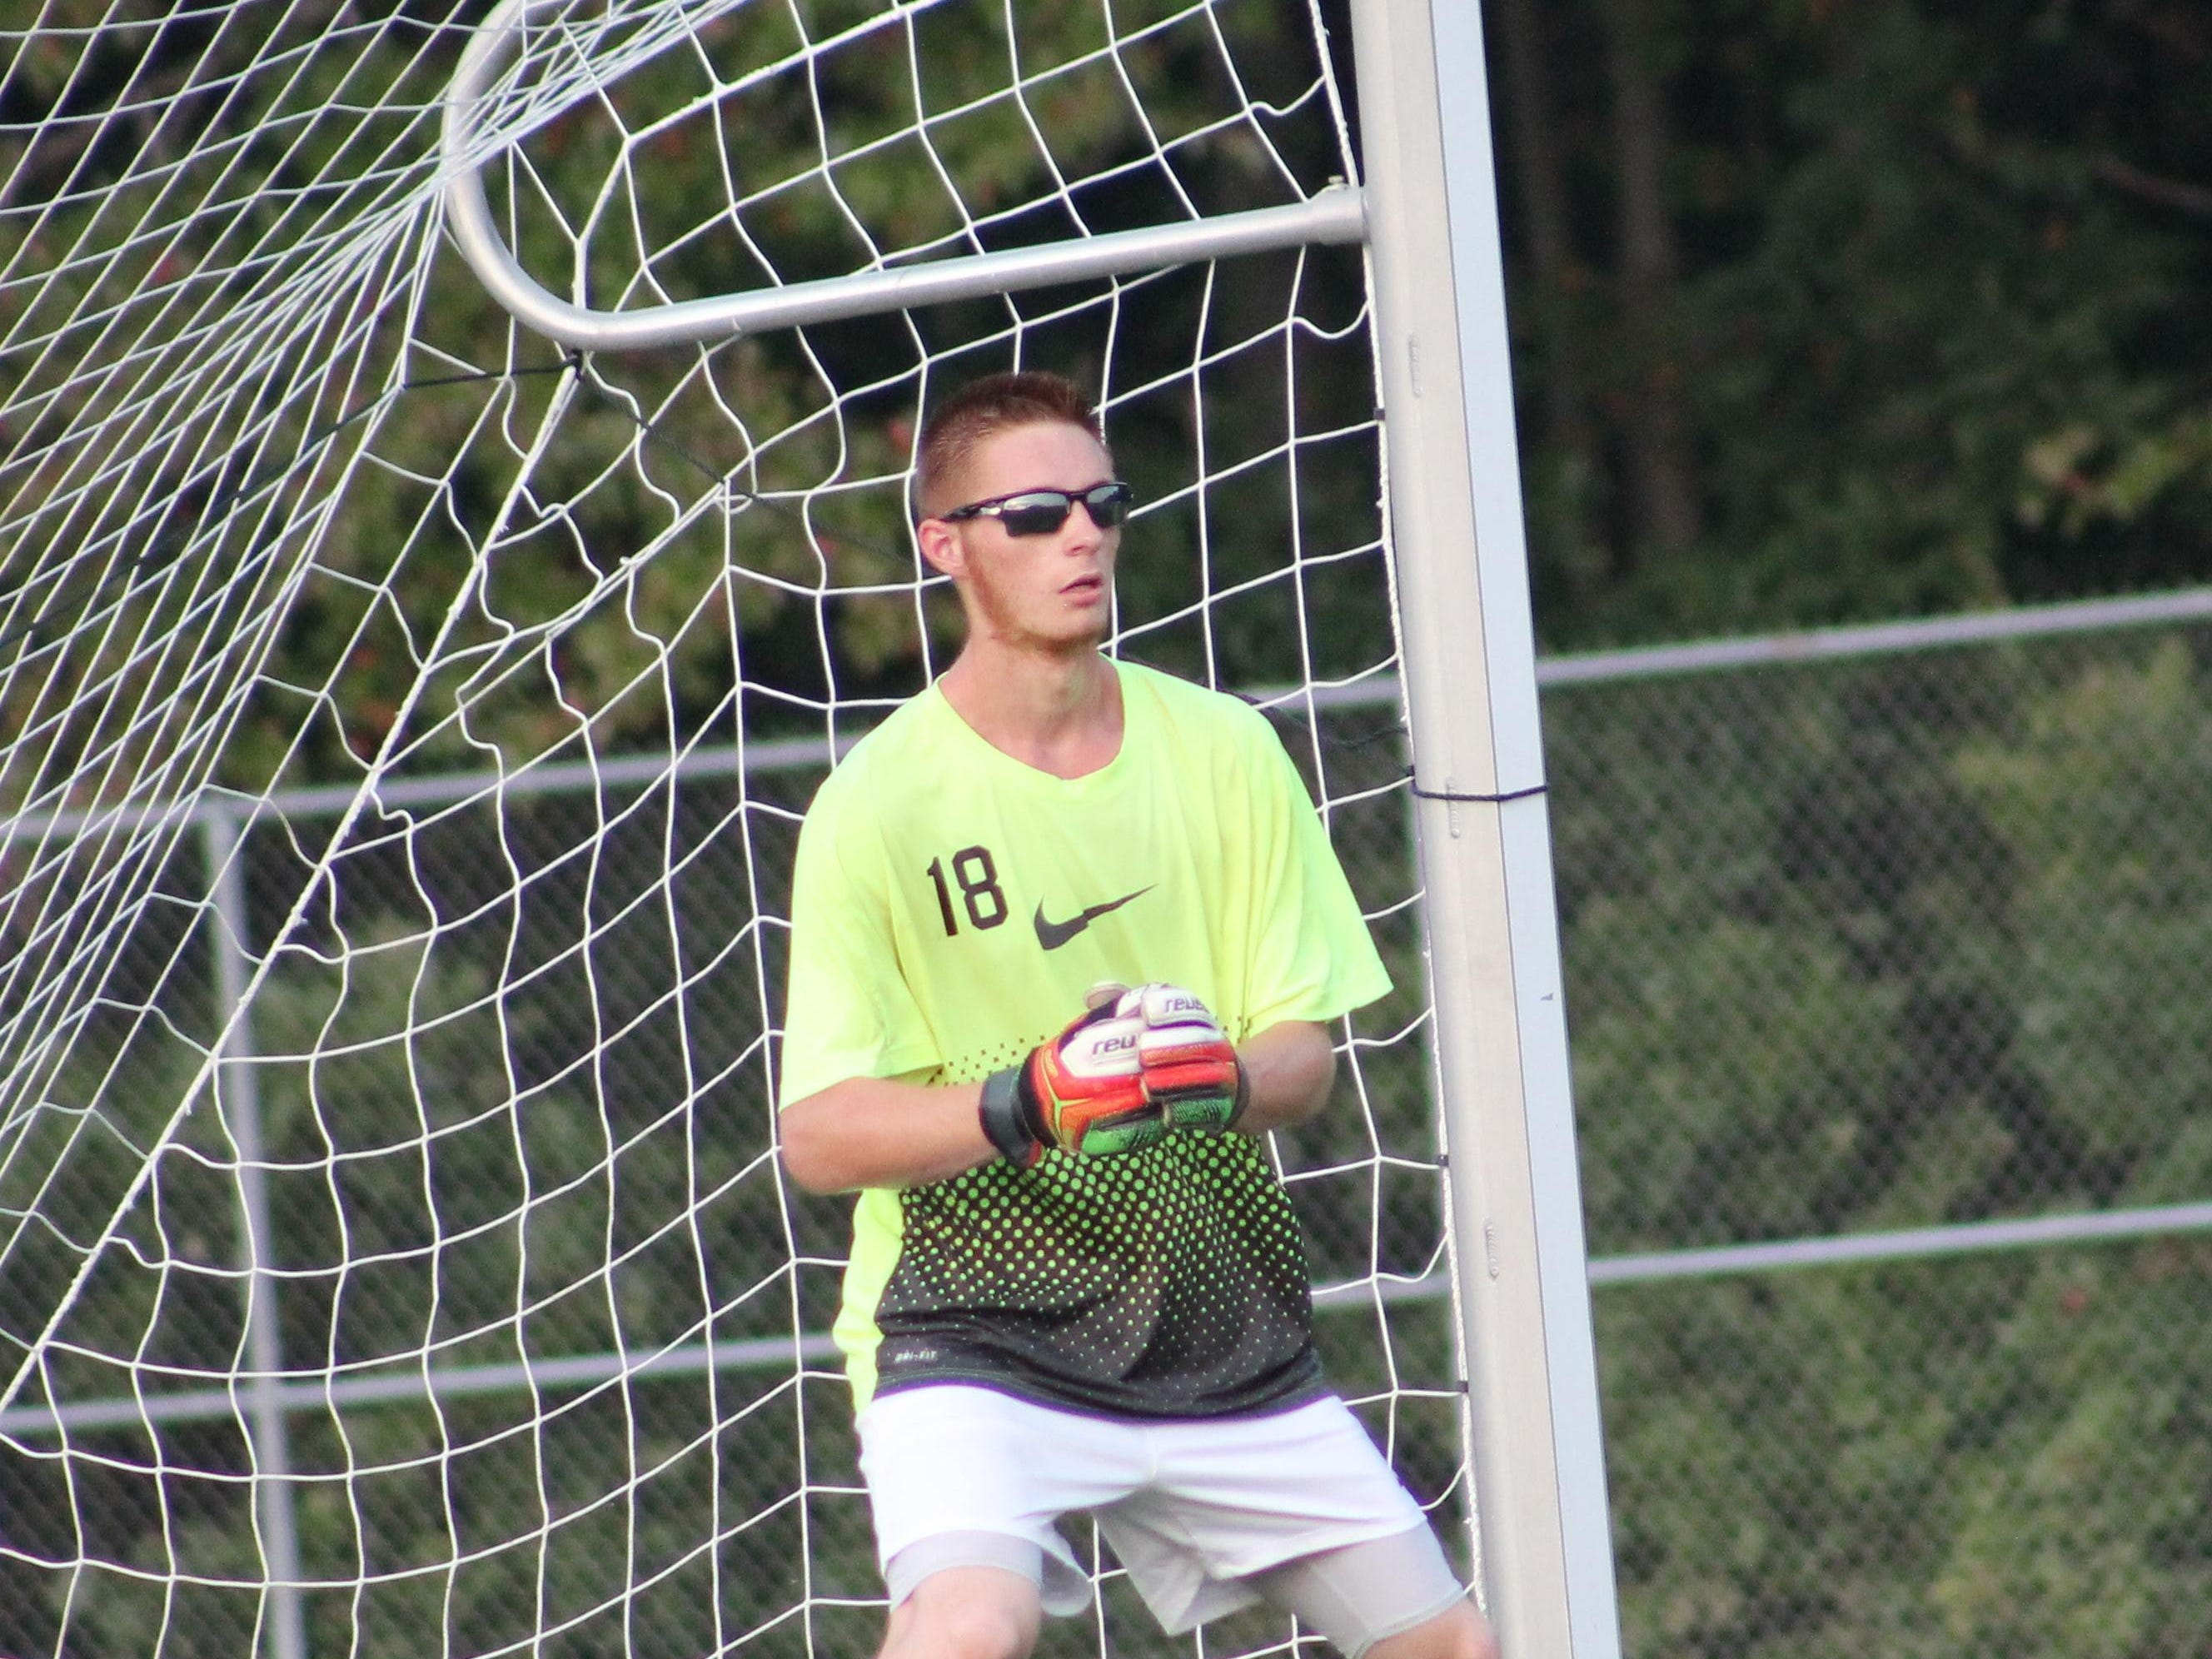 Bethel-Tate senior goalie Ian Kimmerly sports the shades during an early September game for the Tigers.